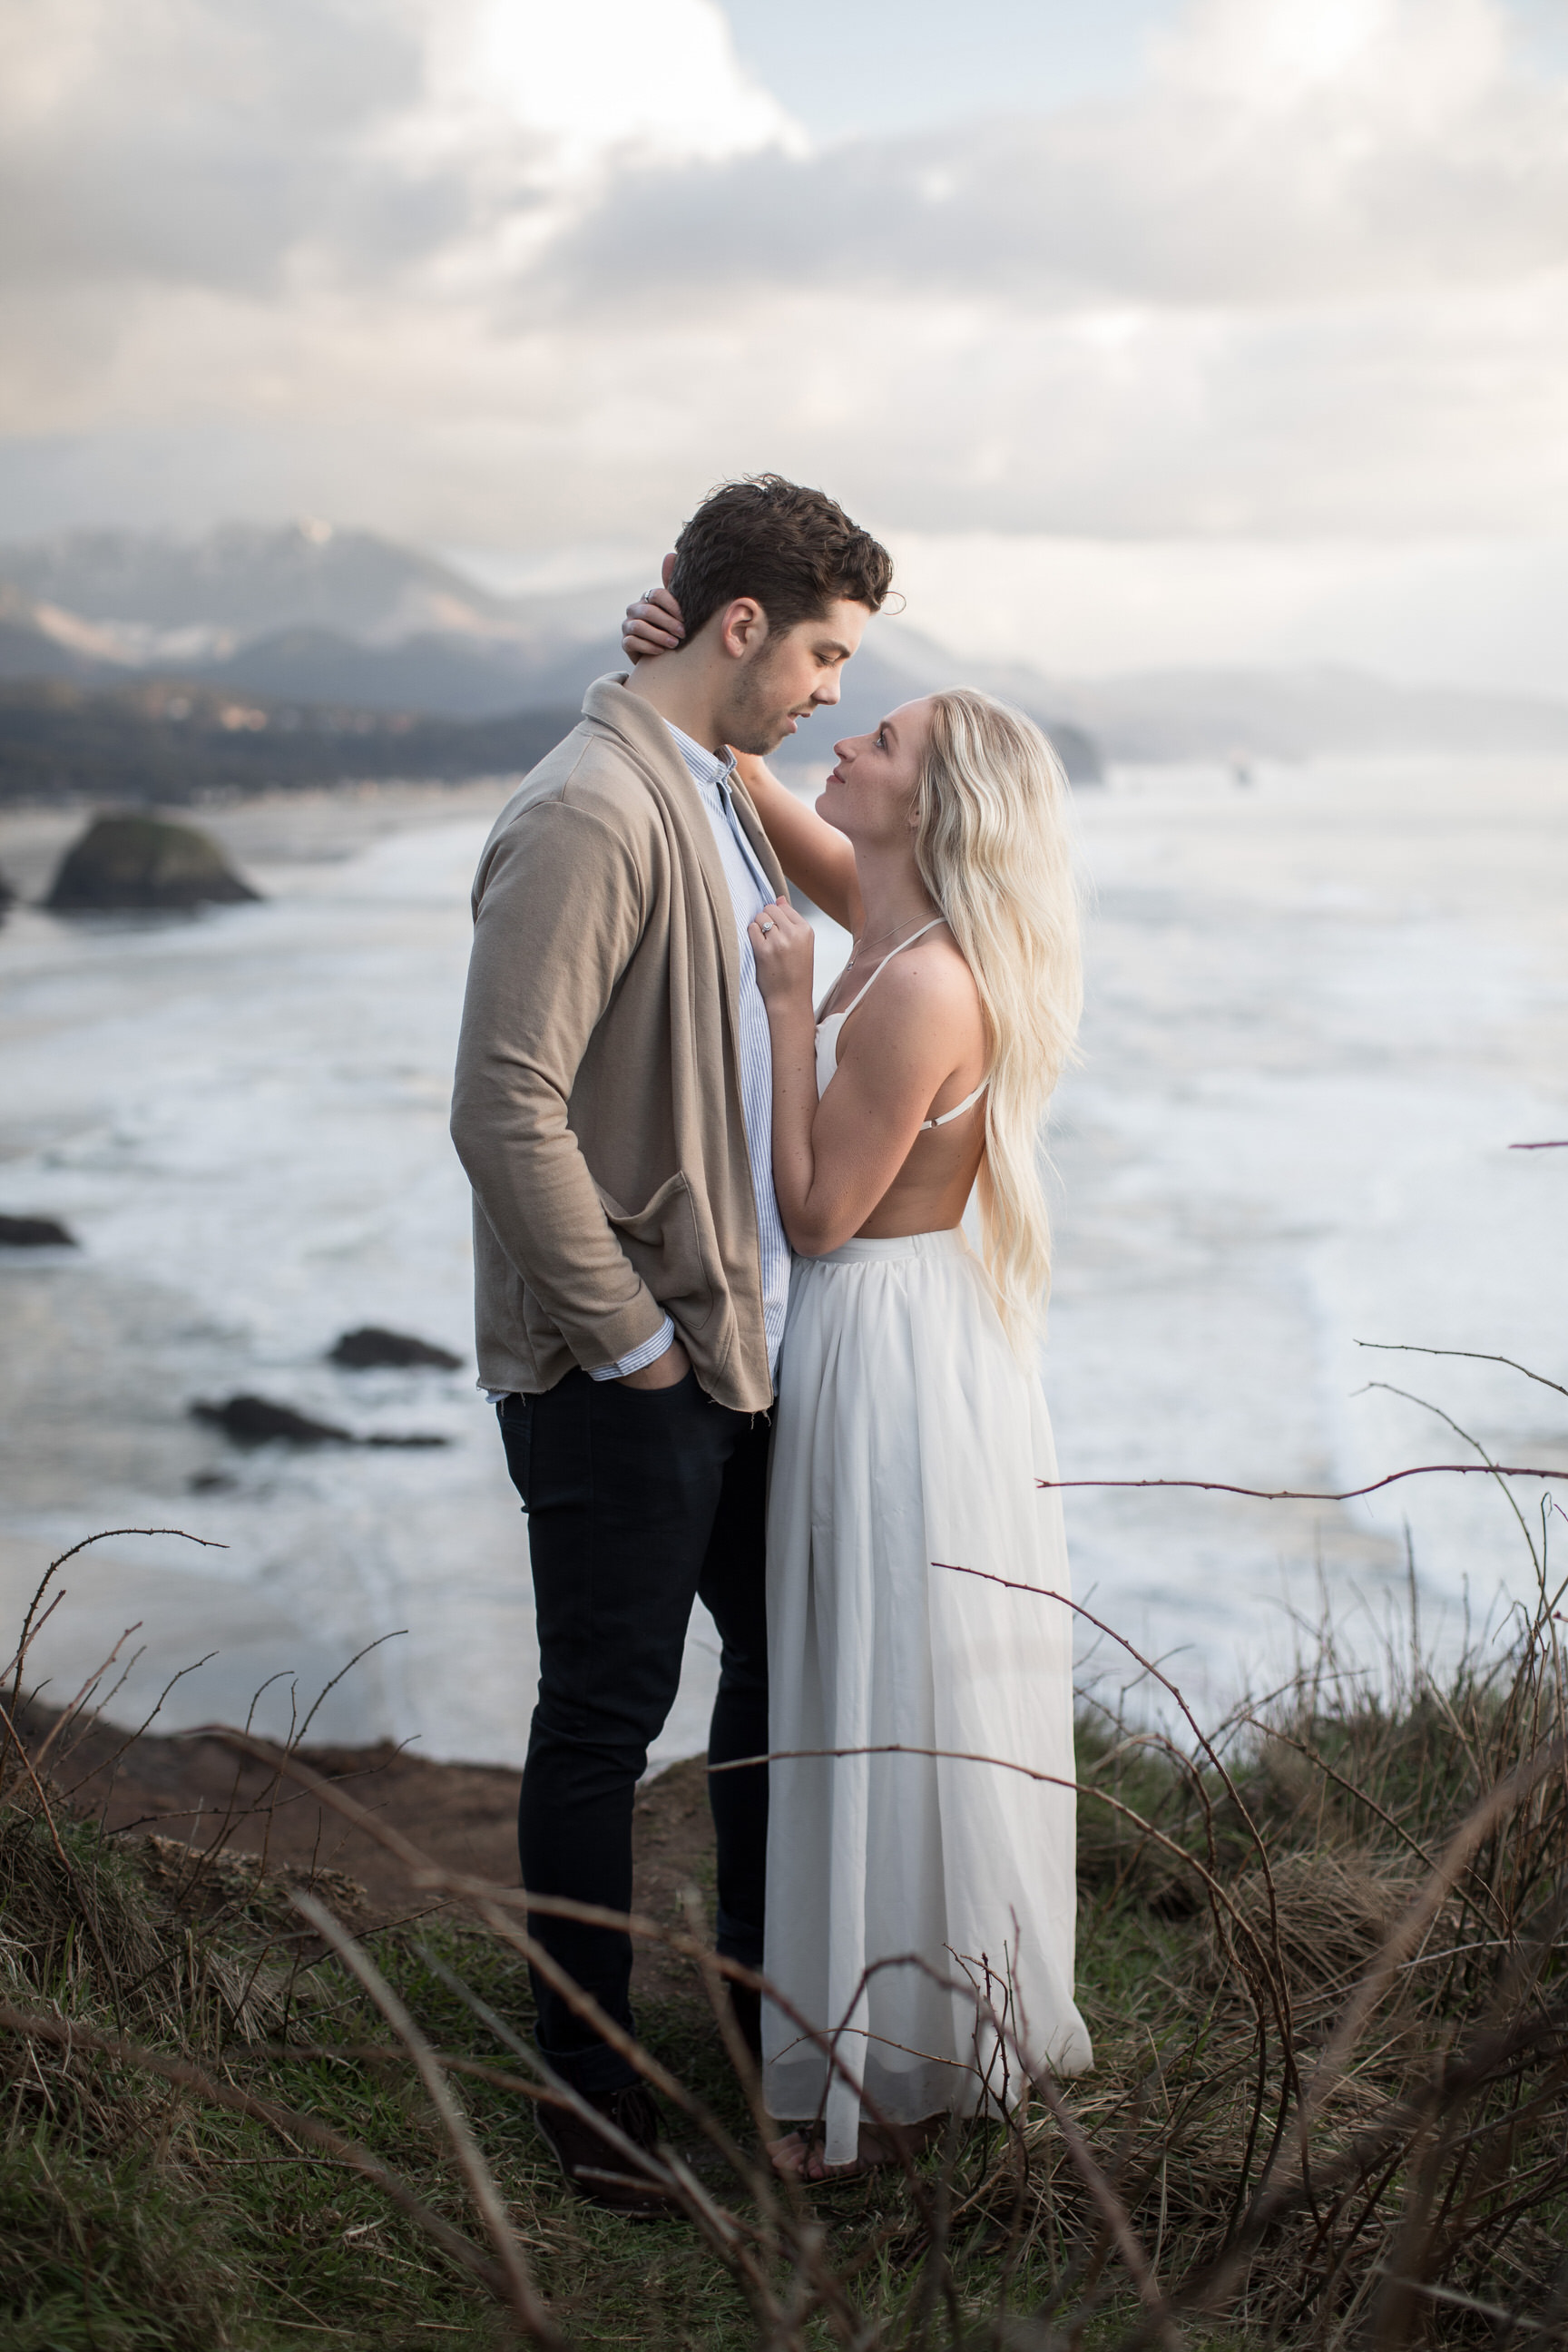 CANNONBEACHENGAGEMENTS (42 of 58).jpg